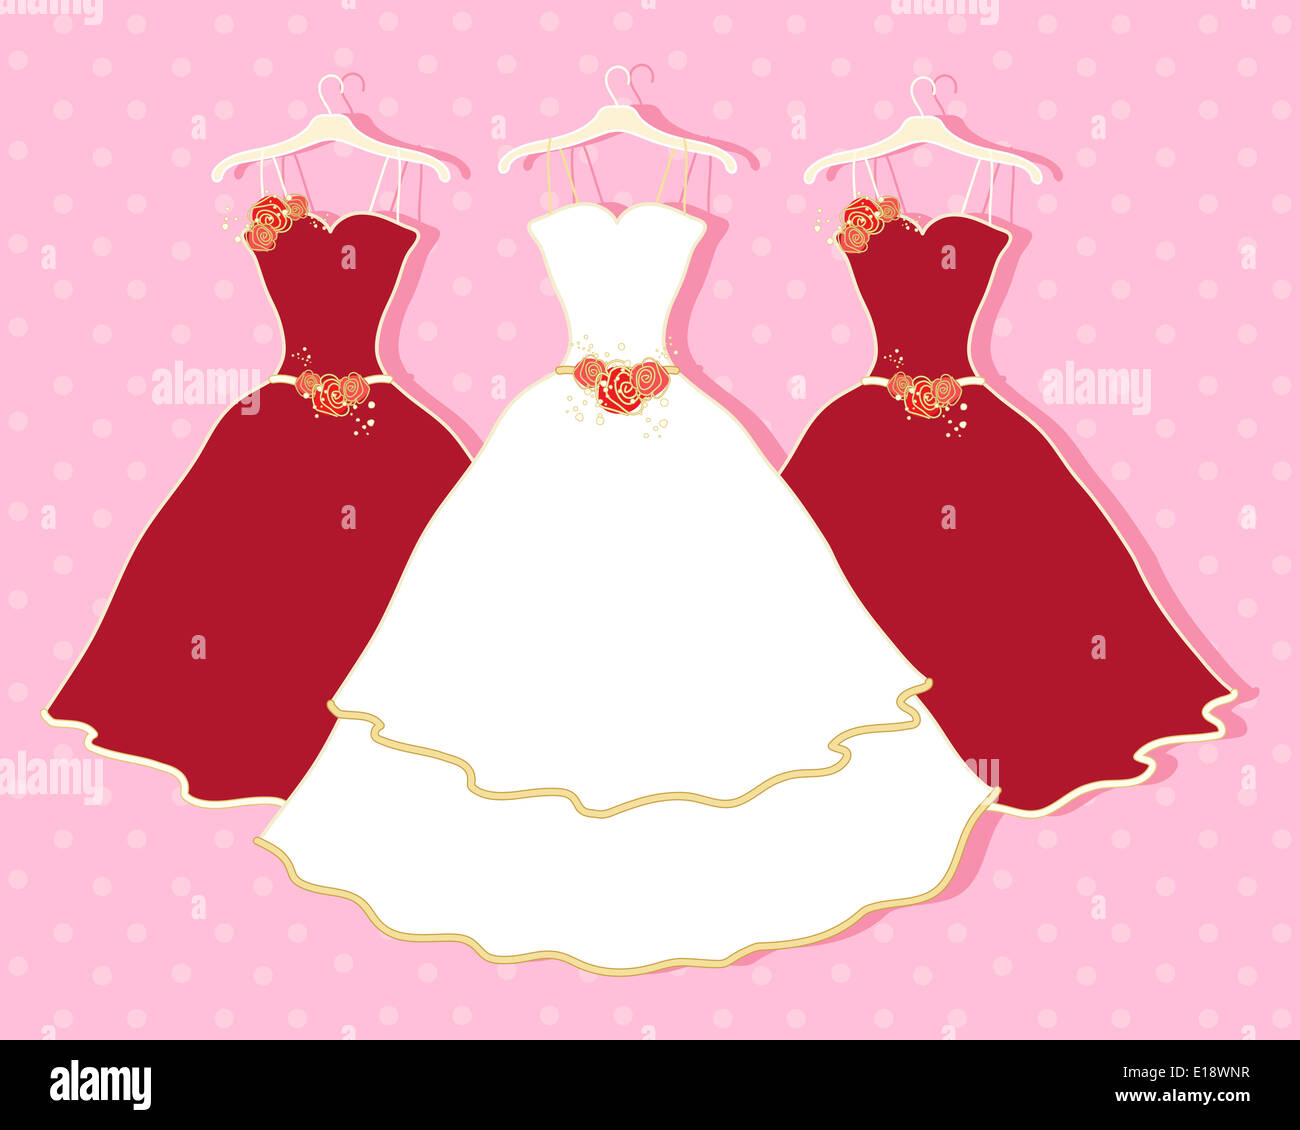 an illustration of a white wedding dress and two red bridesmaid ...